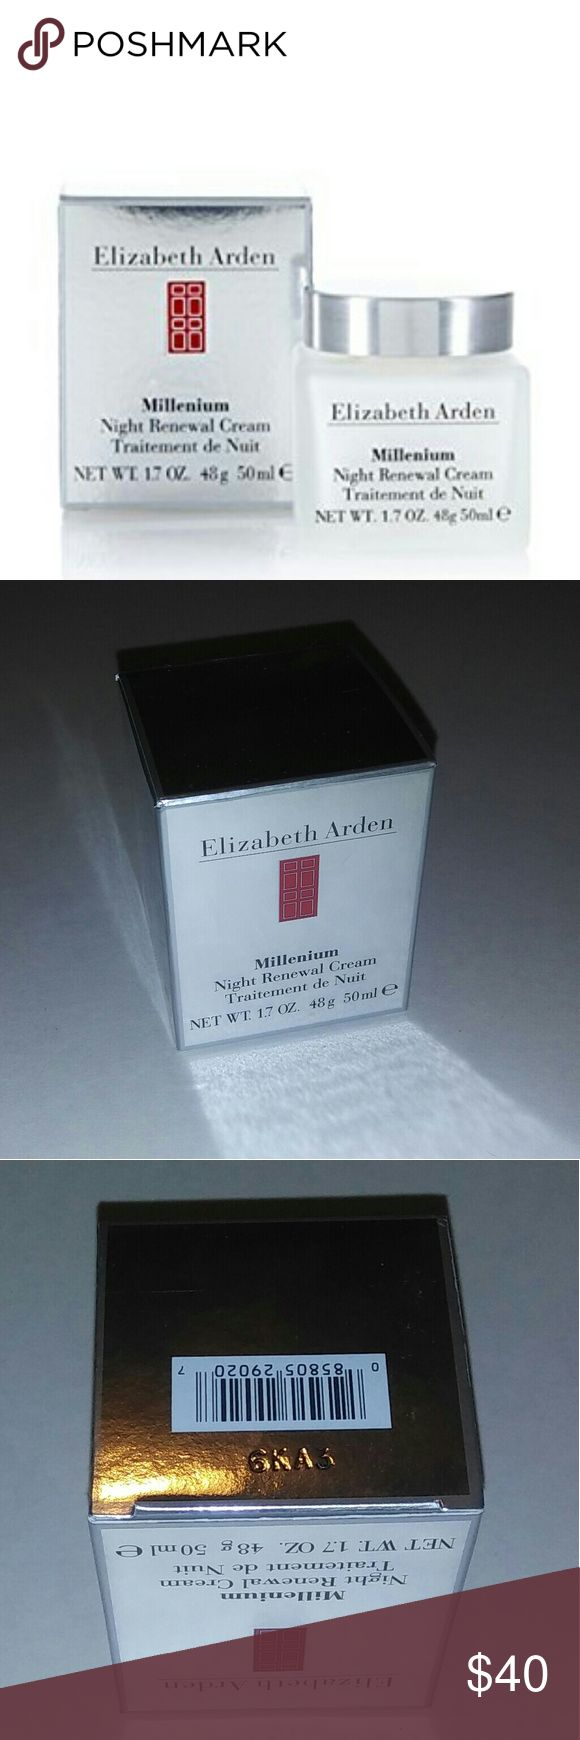 Elizabeth Arden Millenium Night Renewal Cream Brand new in the box!  Elizabeth Arden Millenium Night Cream 1.7 OZ  Description: A luxurious cream that quickly penetrates into skin Replenishes essential moisture to skin surface Instantly evens out dry surface line Boosts cell renewal during sleep at night Skin appears fresh, smooth, supple & luminous on next day Brings overall well-being to your skin Elizabeth Arden Makeup